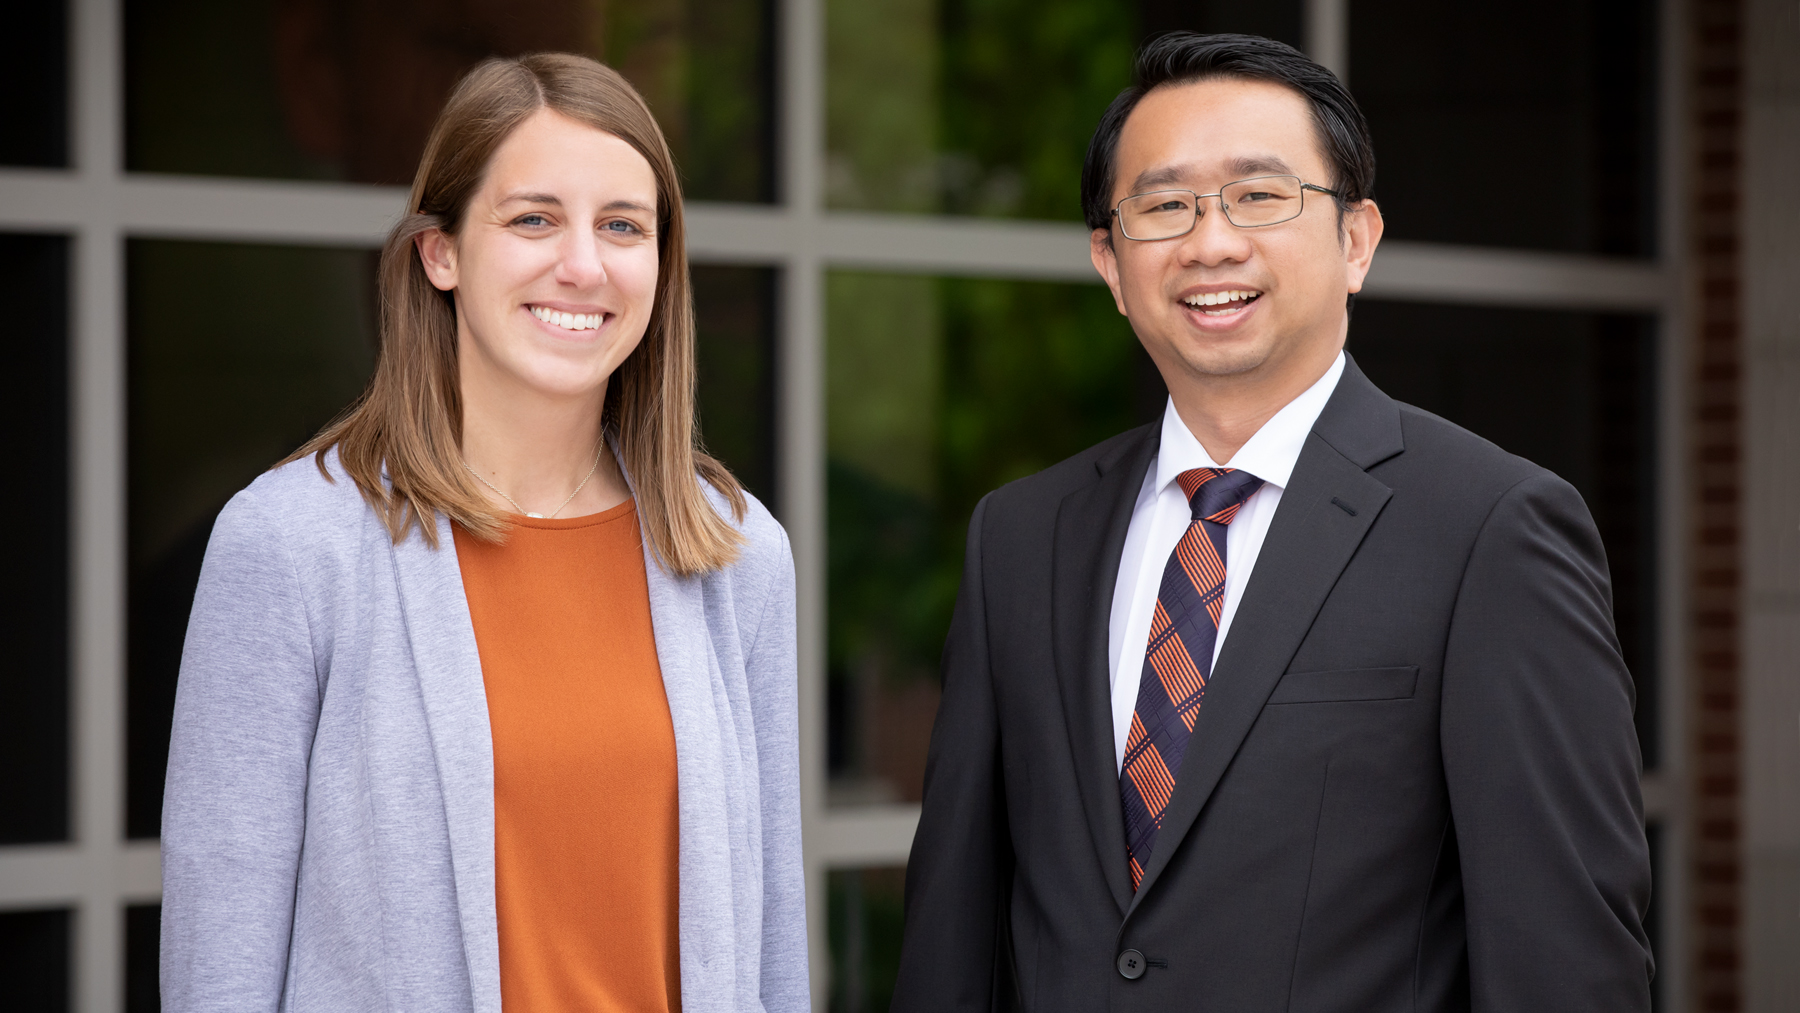 social work professor Kevin Tan and alumna Jenna White.  Photo by L. Brian Stauffer